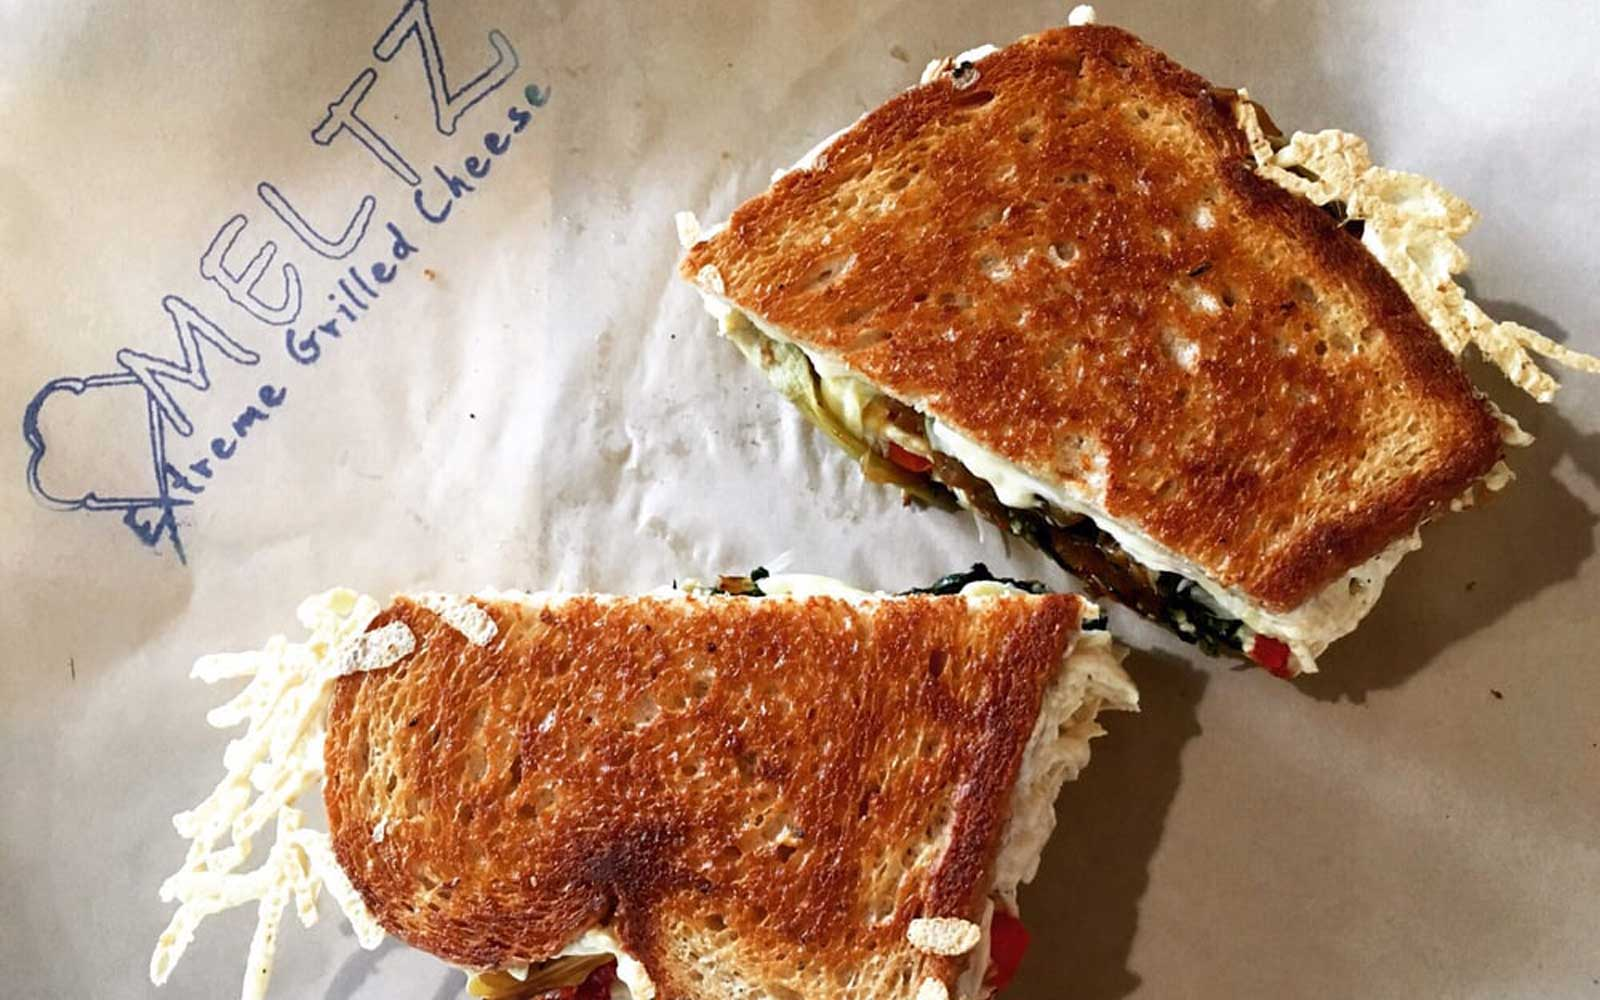 17.Meltz Extreme Grilled Cheese